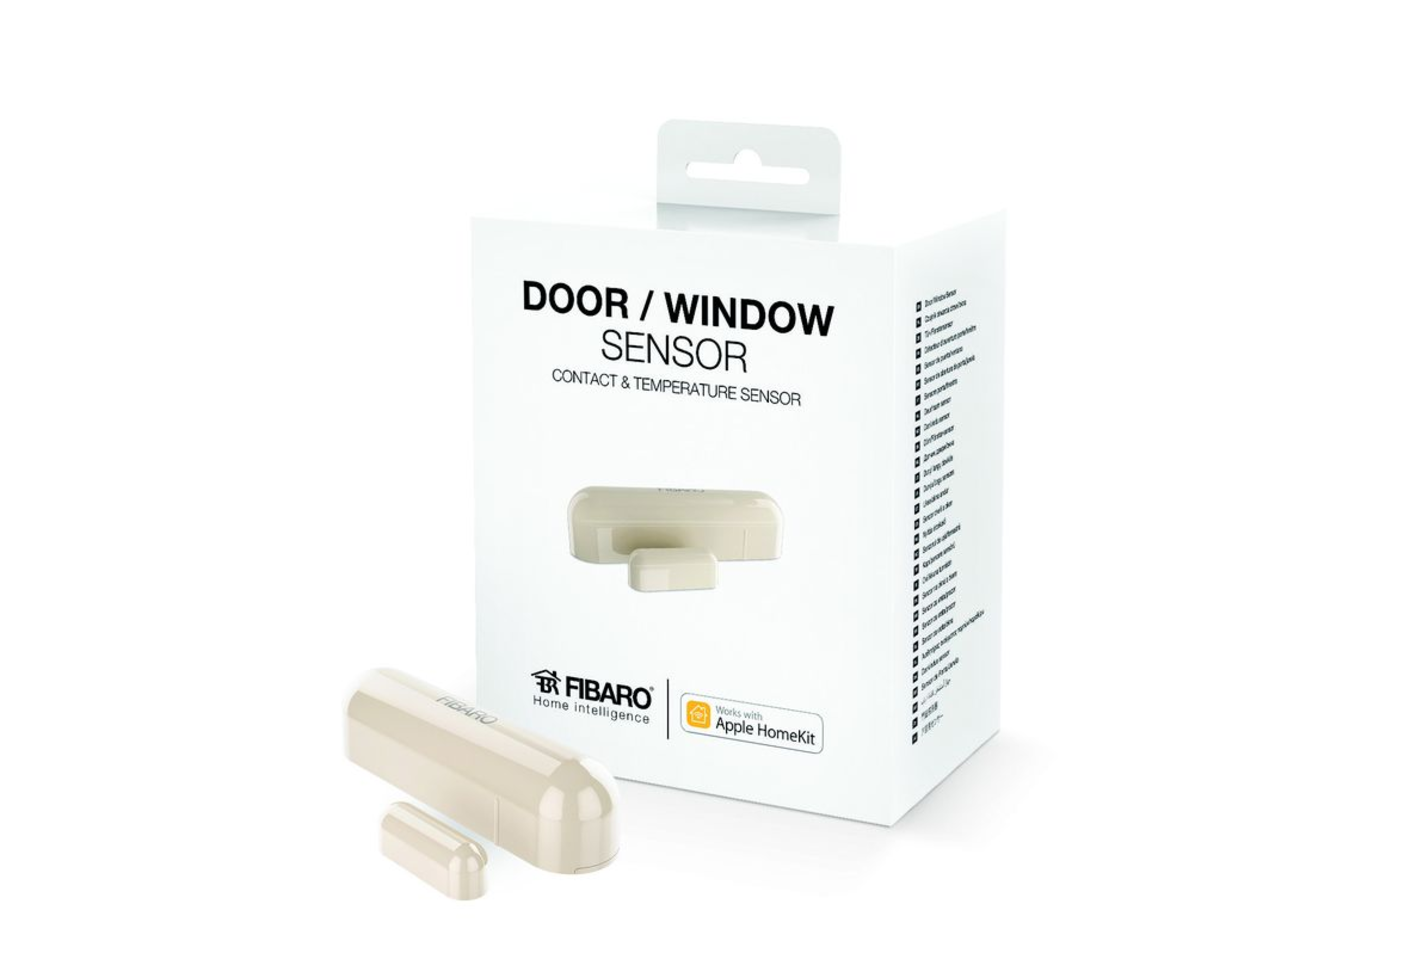 fibaro-door-window-sensor